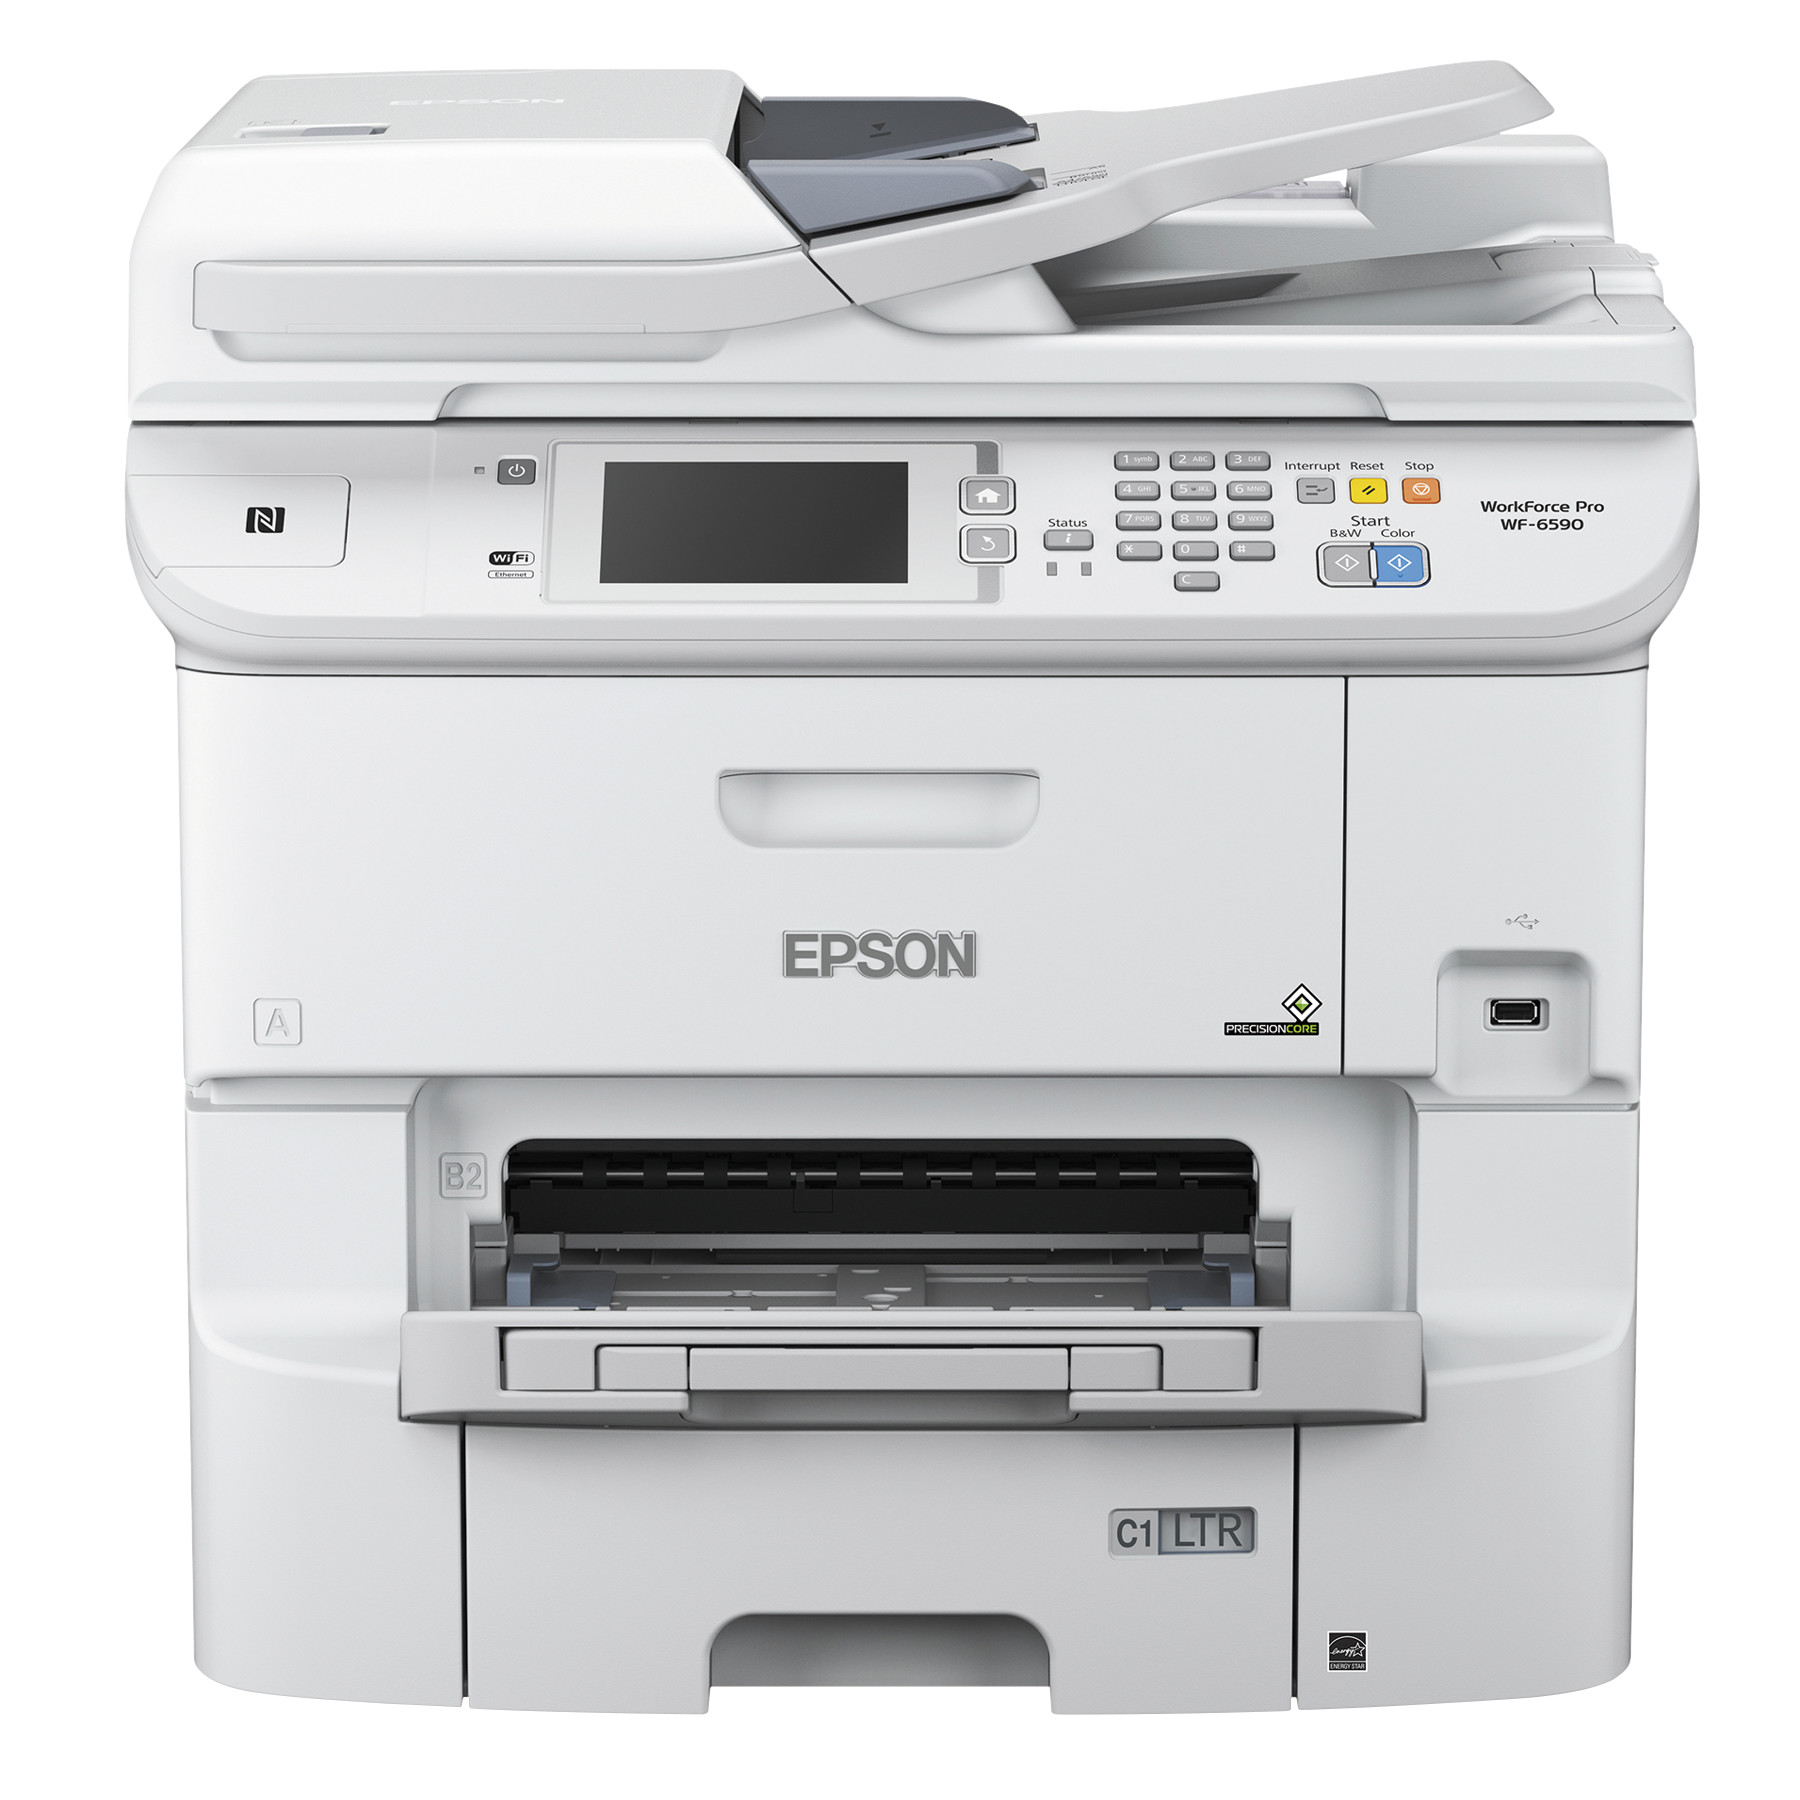 Epson WorkForce Pro WF-6590 Wireless Multifunction Color Printer, Copy Fax Print Scan by Epson